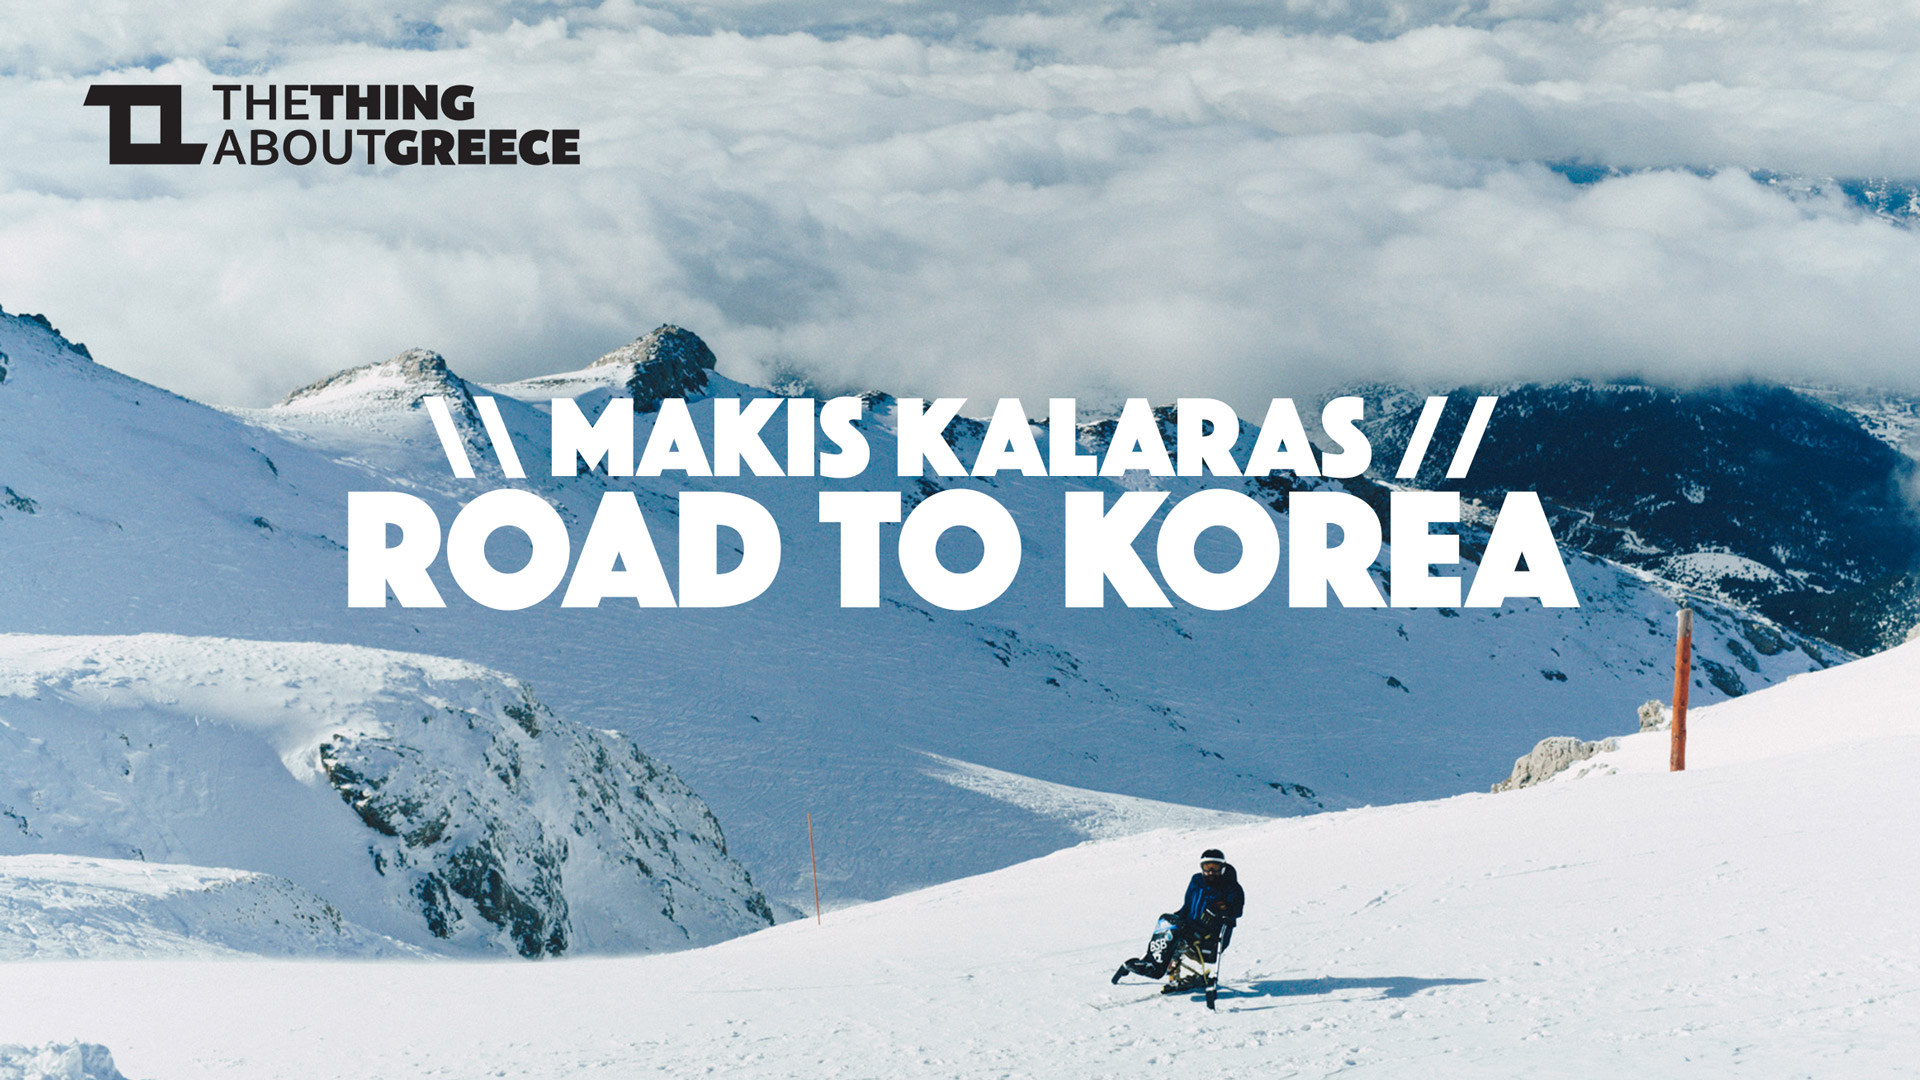 MAKIS KALARAS // ROAD TO KOREA